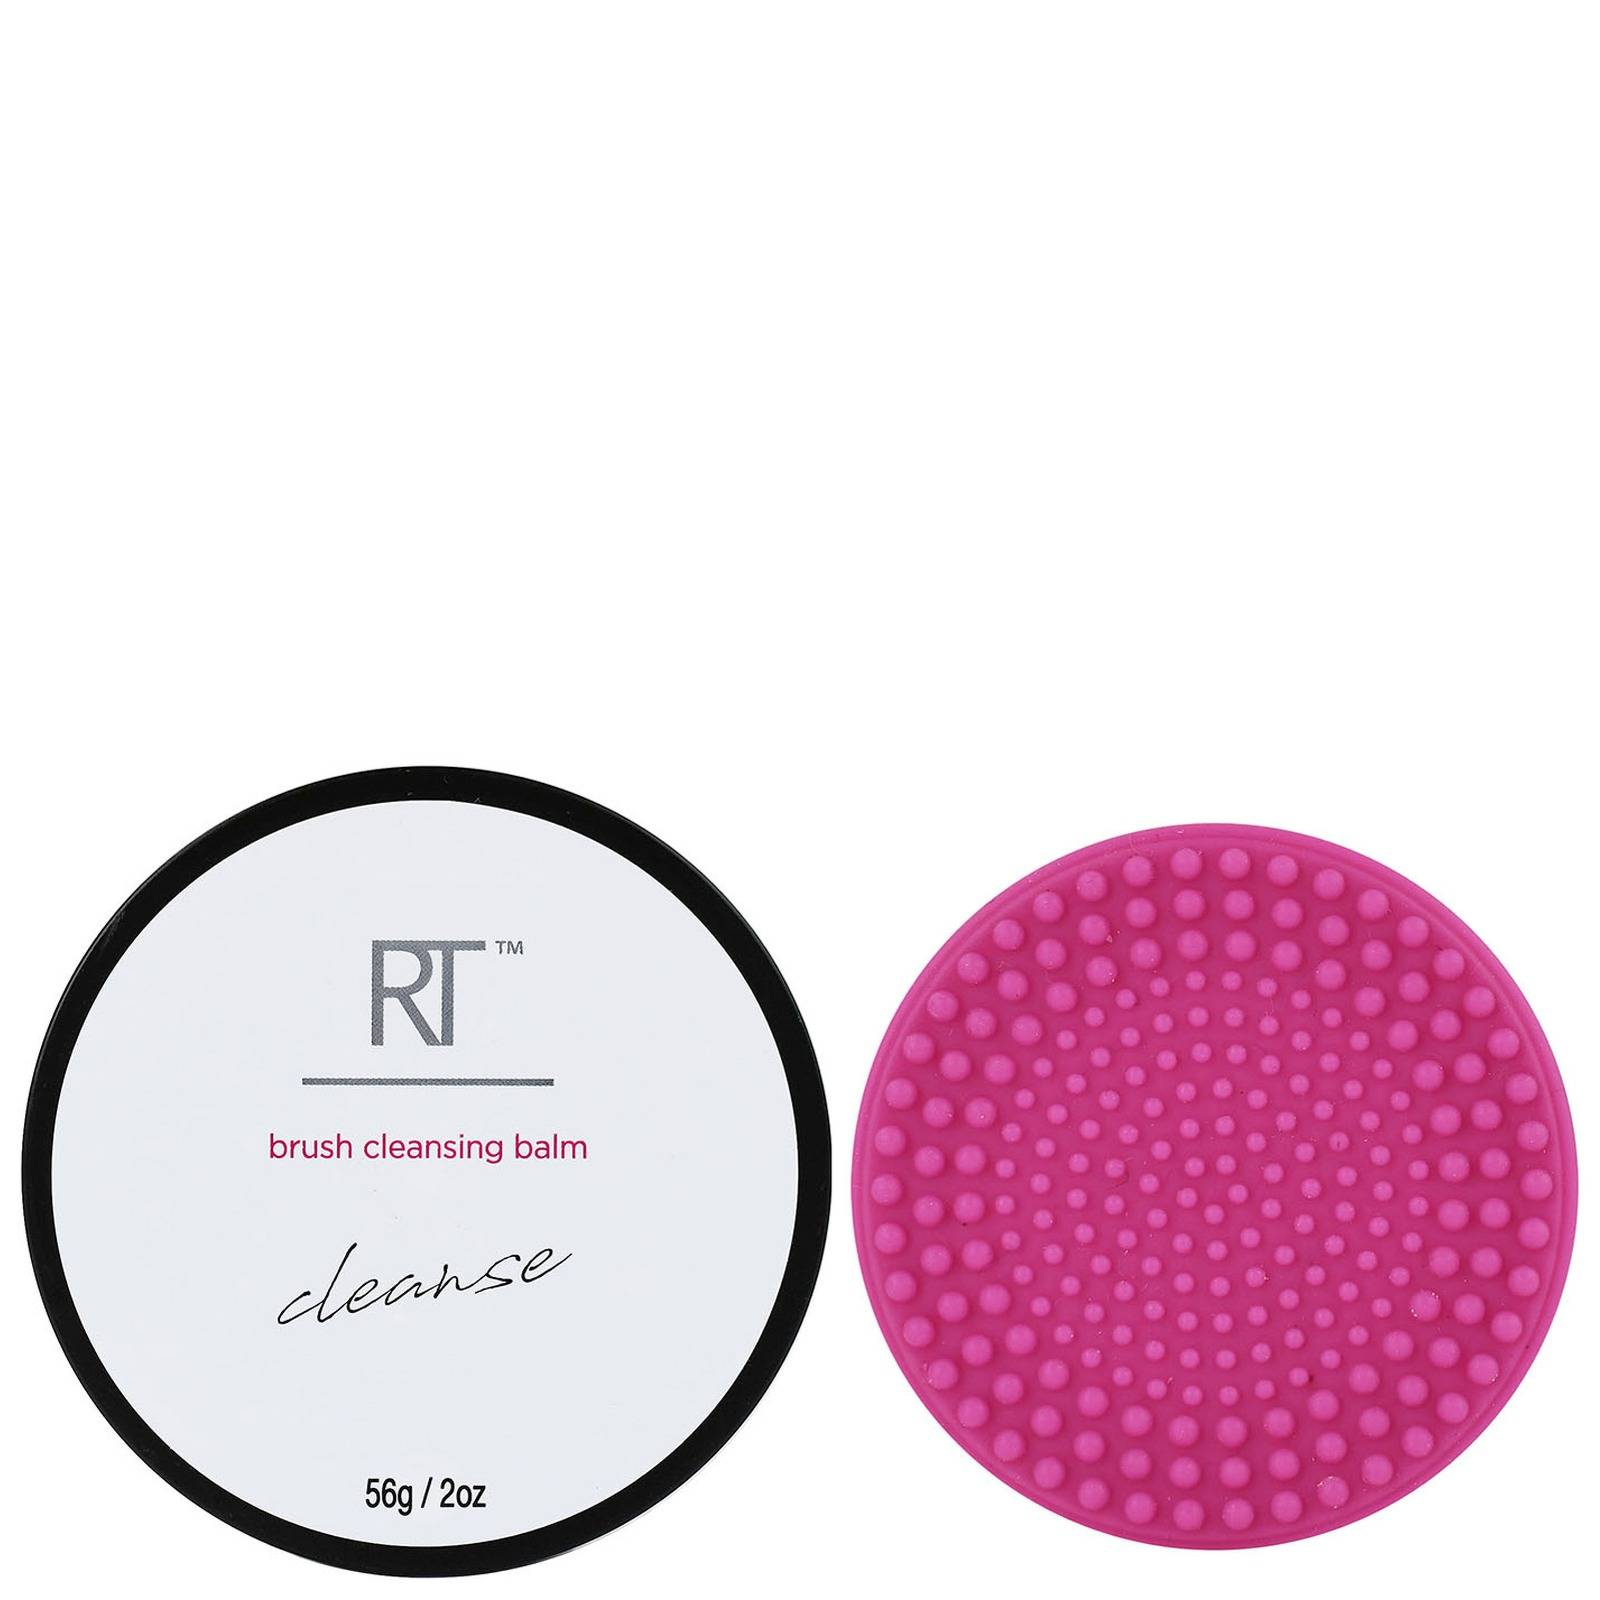 Real Techniques Gifts and Sets Spazzola Cleansing Balm Duo Set